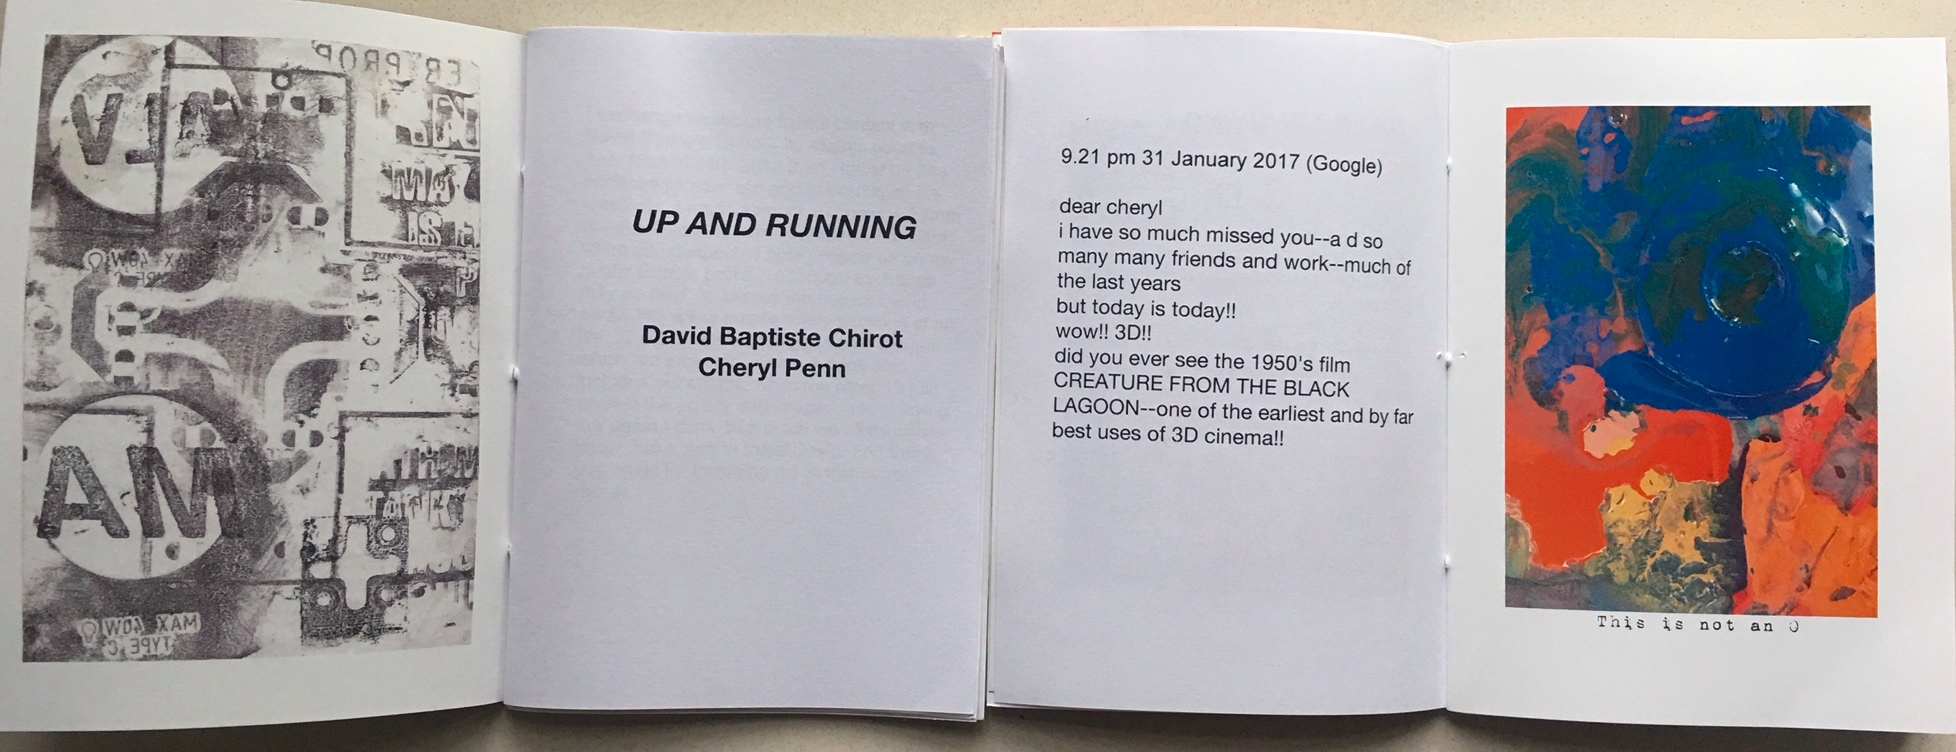 Up and Running: David Baptiste Chirot/Cheryl Penn